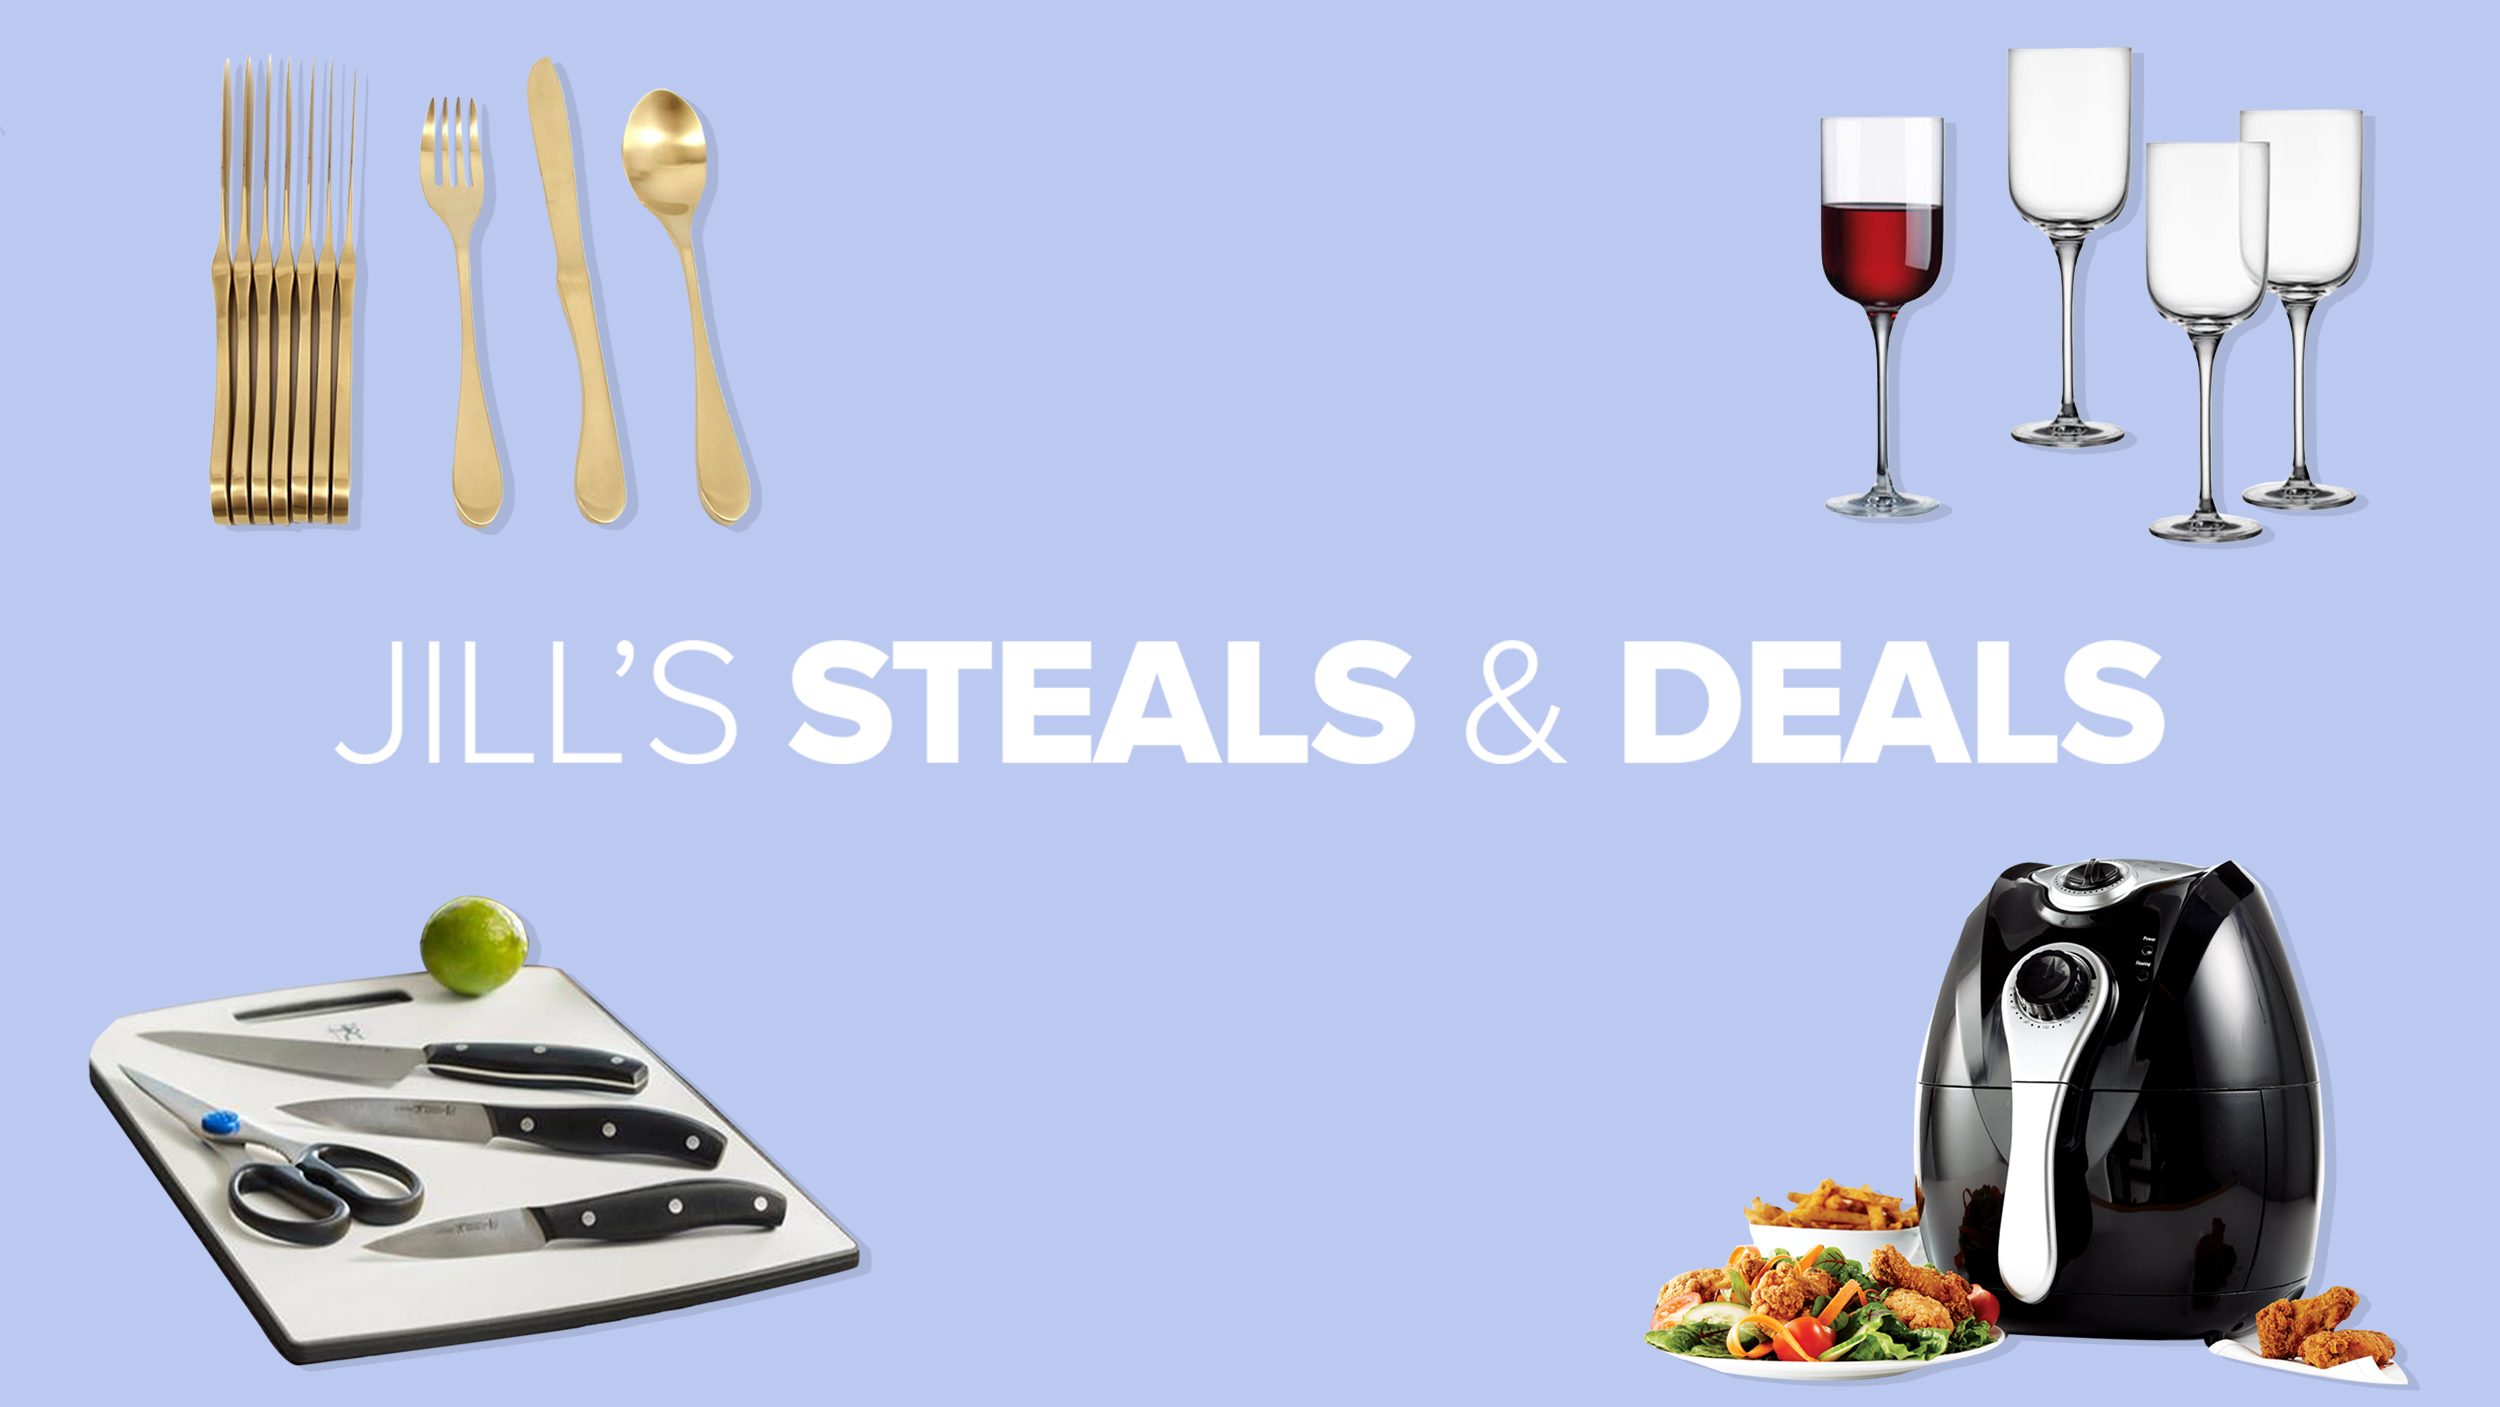 Deals and steals today show